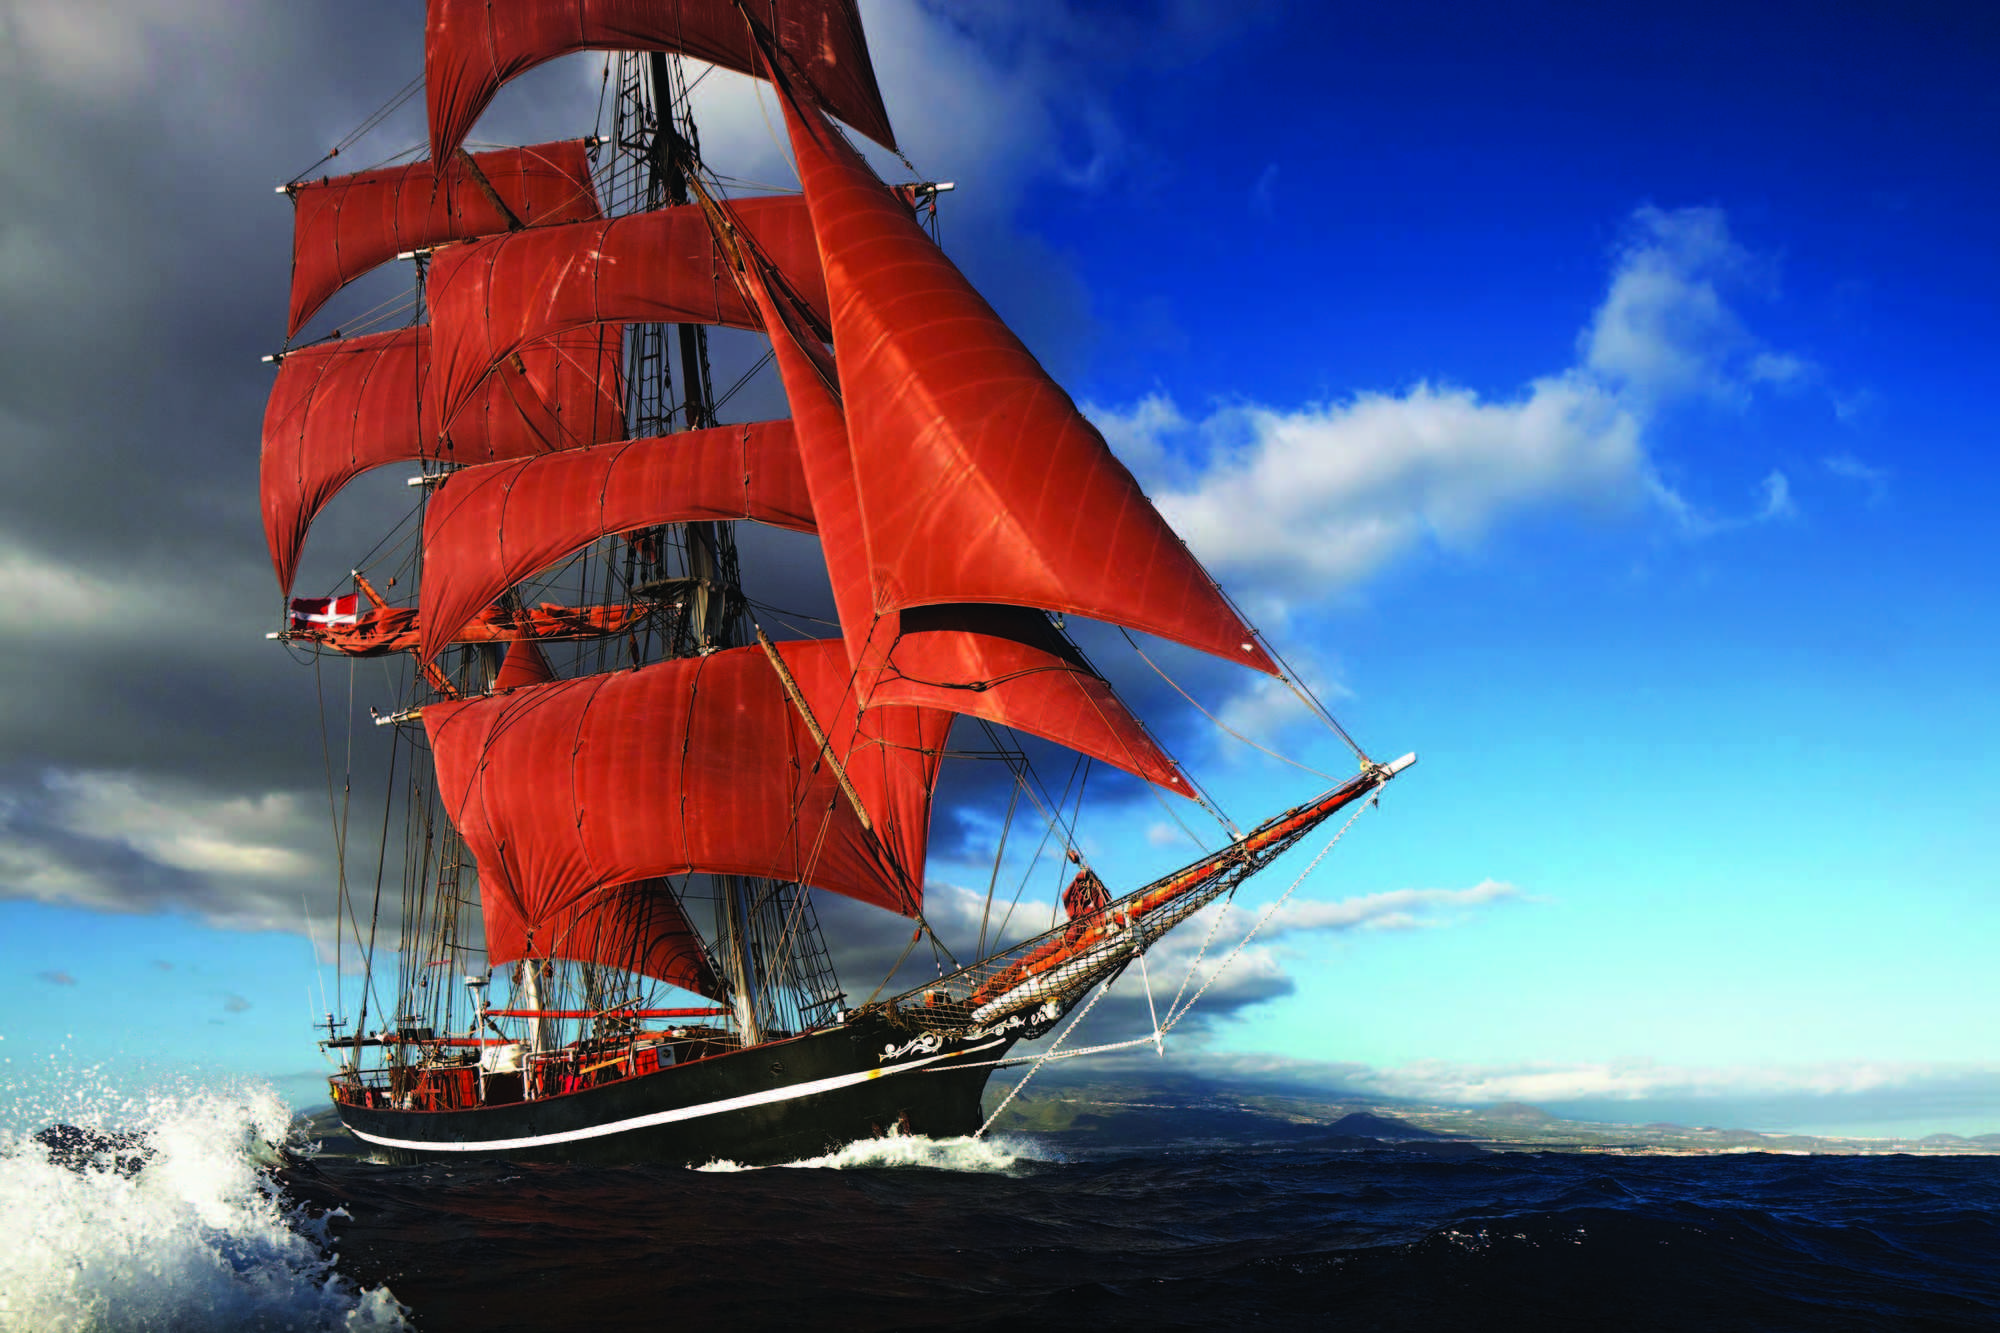 http://wecarlovers.wehomeowners.com/wp-content/uploads/2016/07/Tall-Ship.jpg